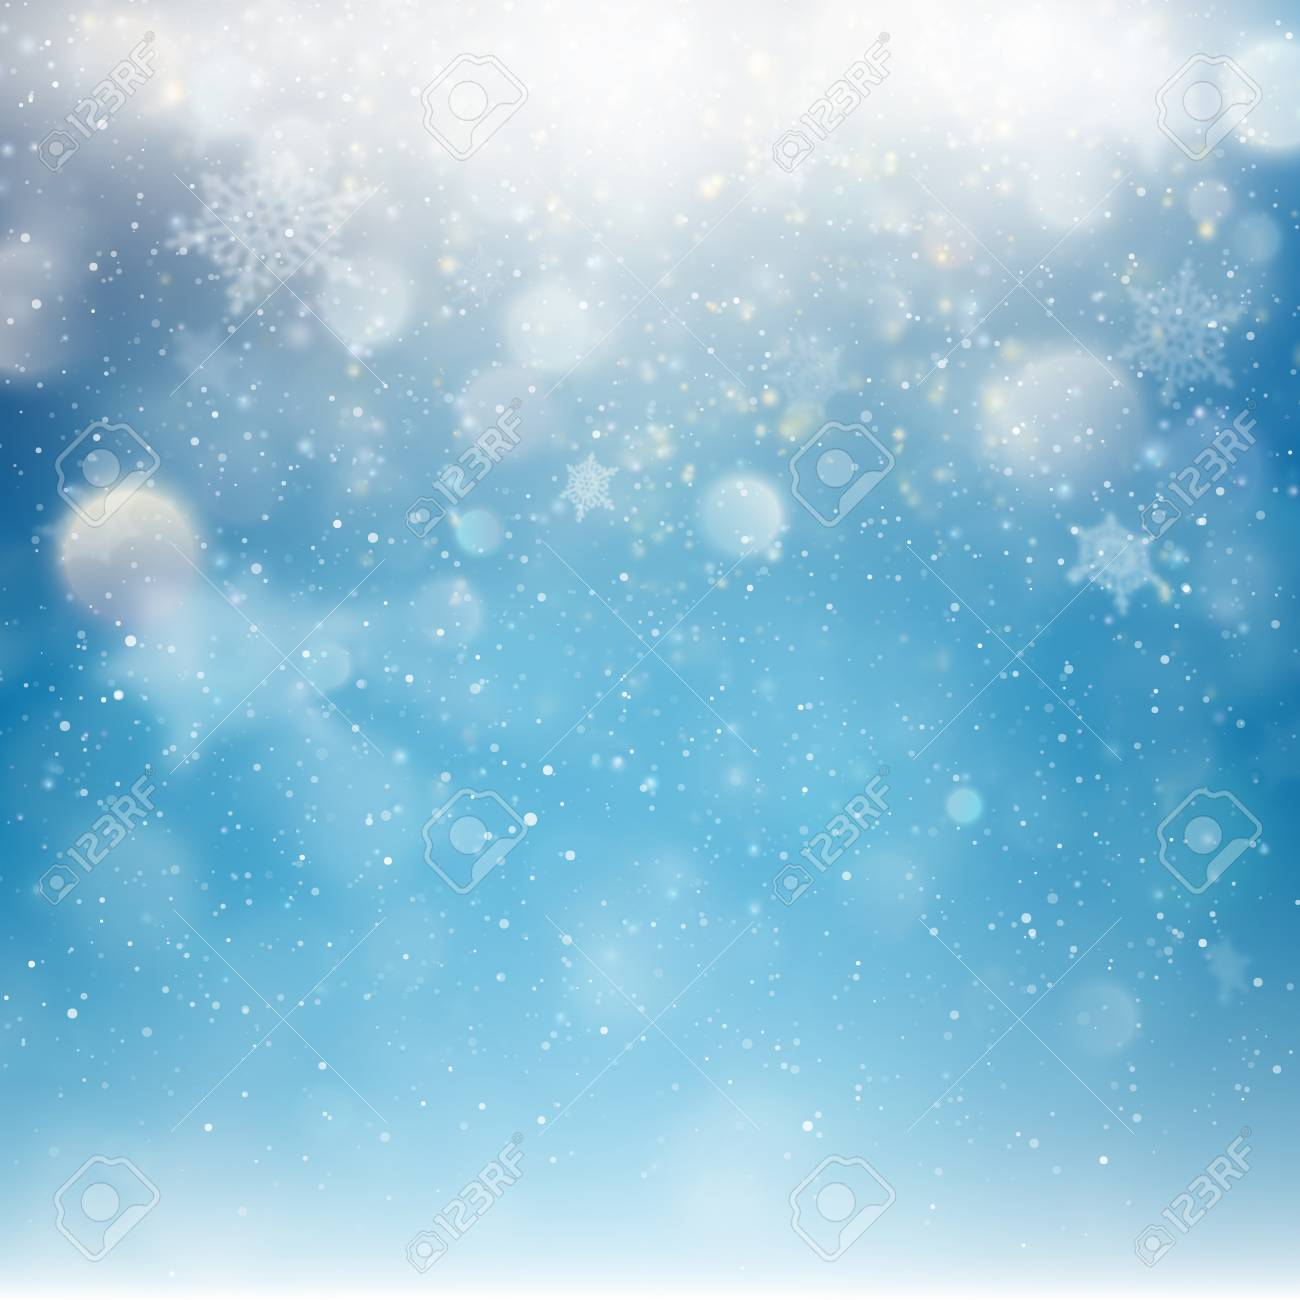 blue christmas falling snow template flying snowflakes background